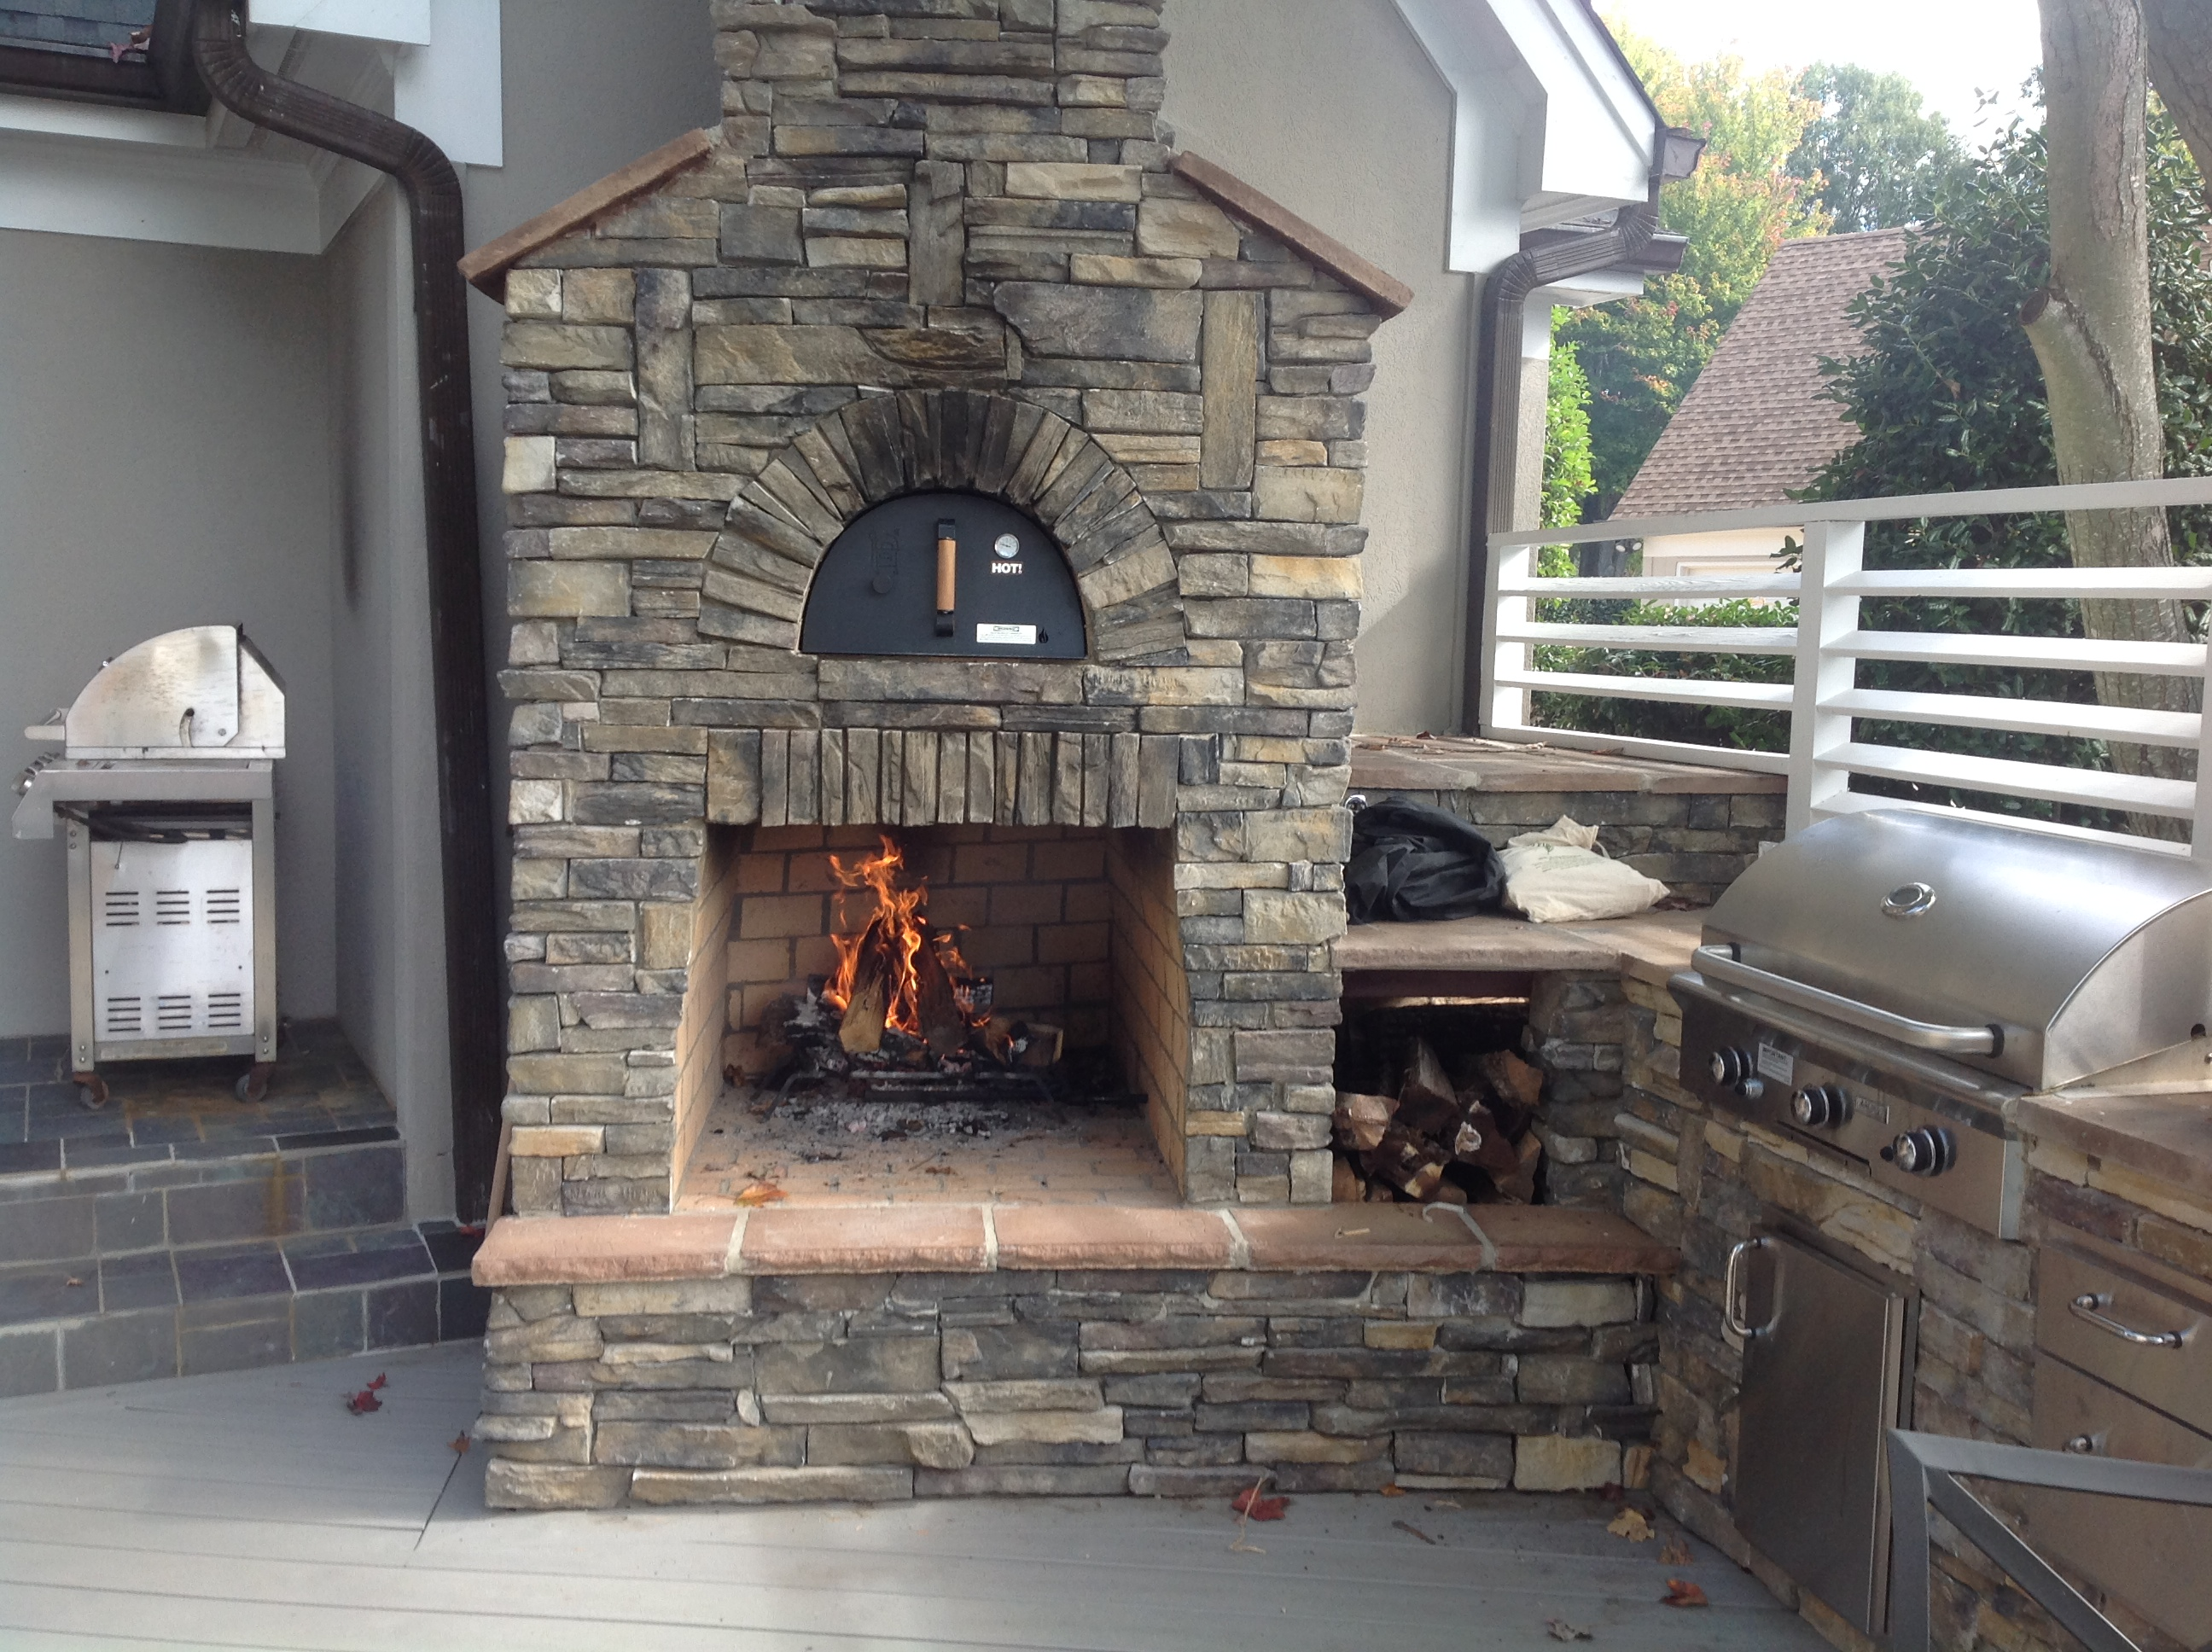 outdoor kitchen with fireplace cabinets woburn ma archadeck of charlotte voted best in design award by houzz